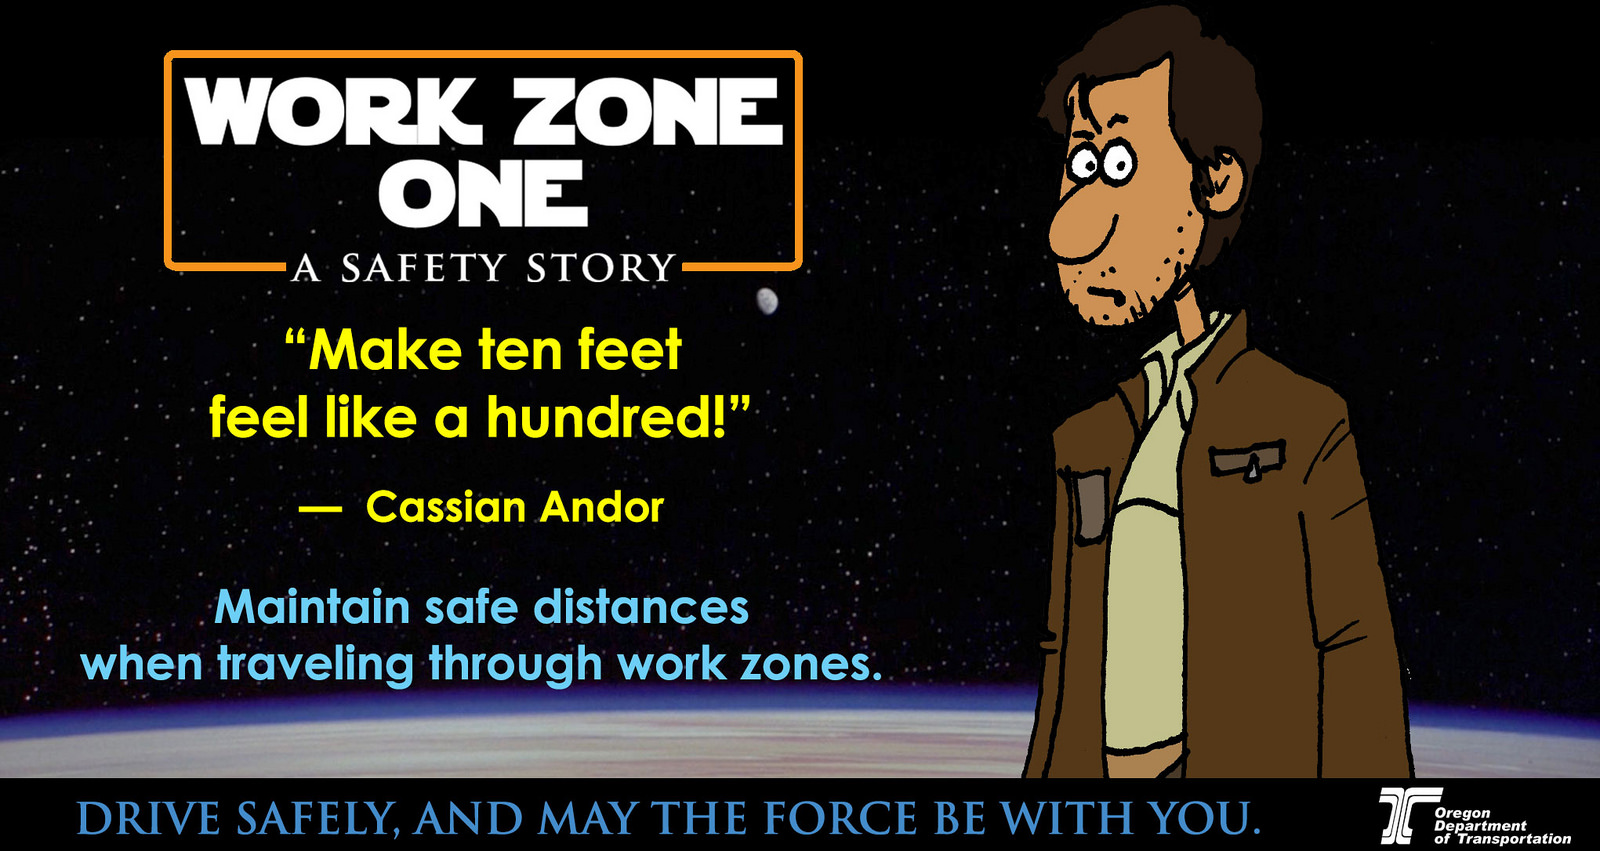 Social media messages for May the Fourth (Star Wars Day) focused on work zone safety. (CC by 2.0)